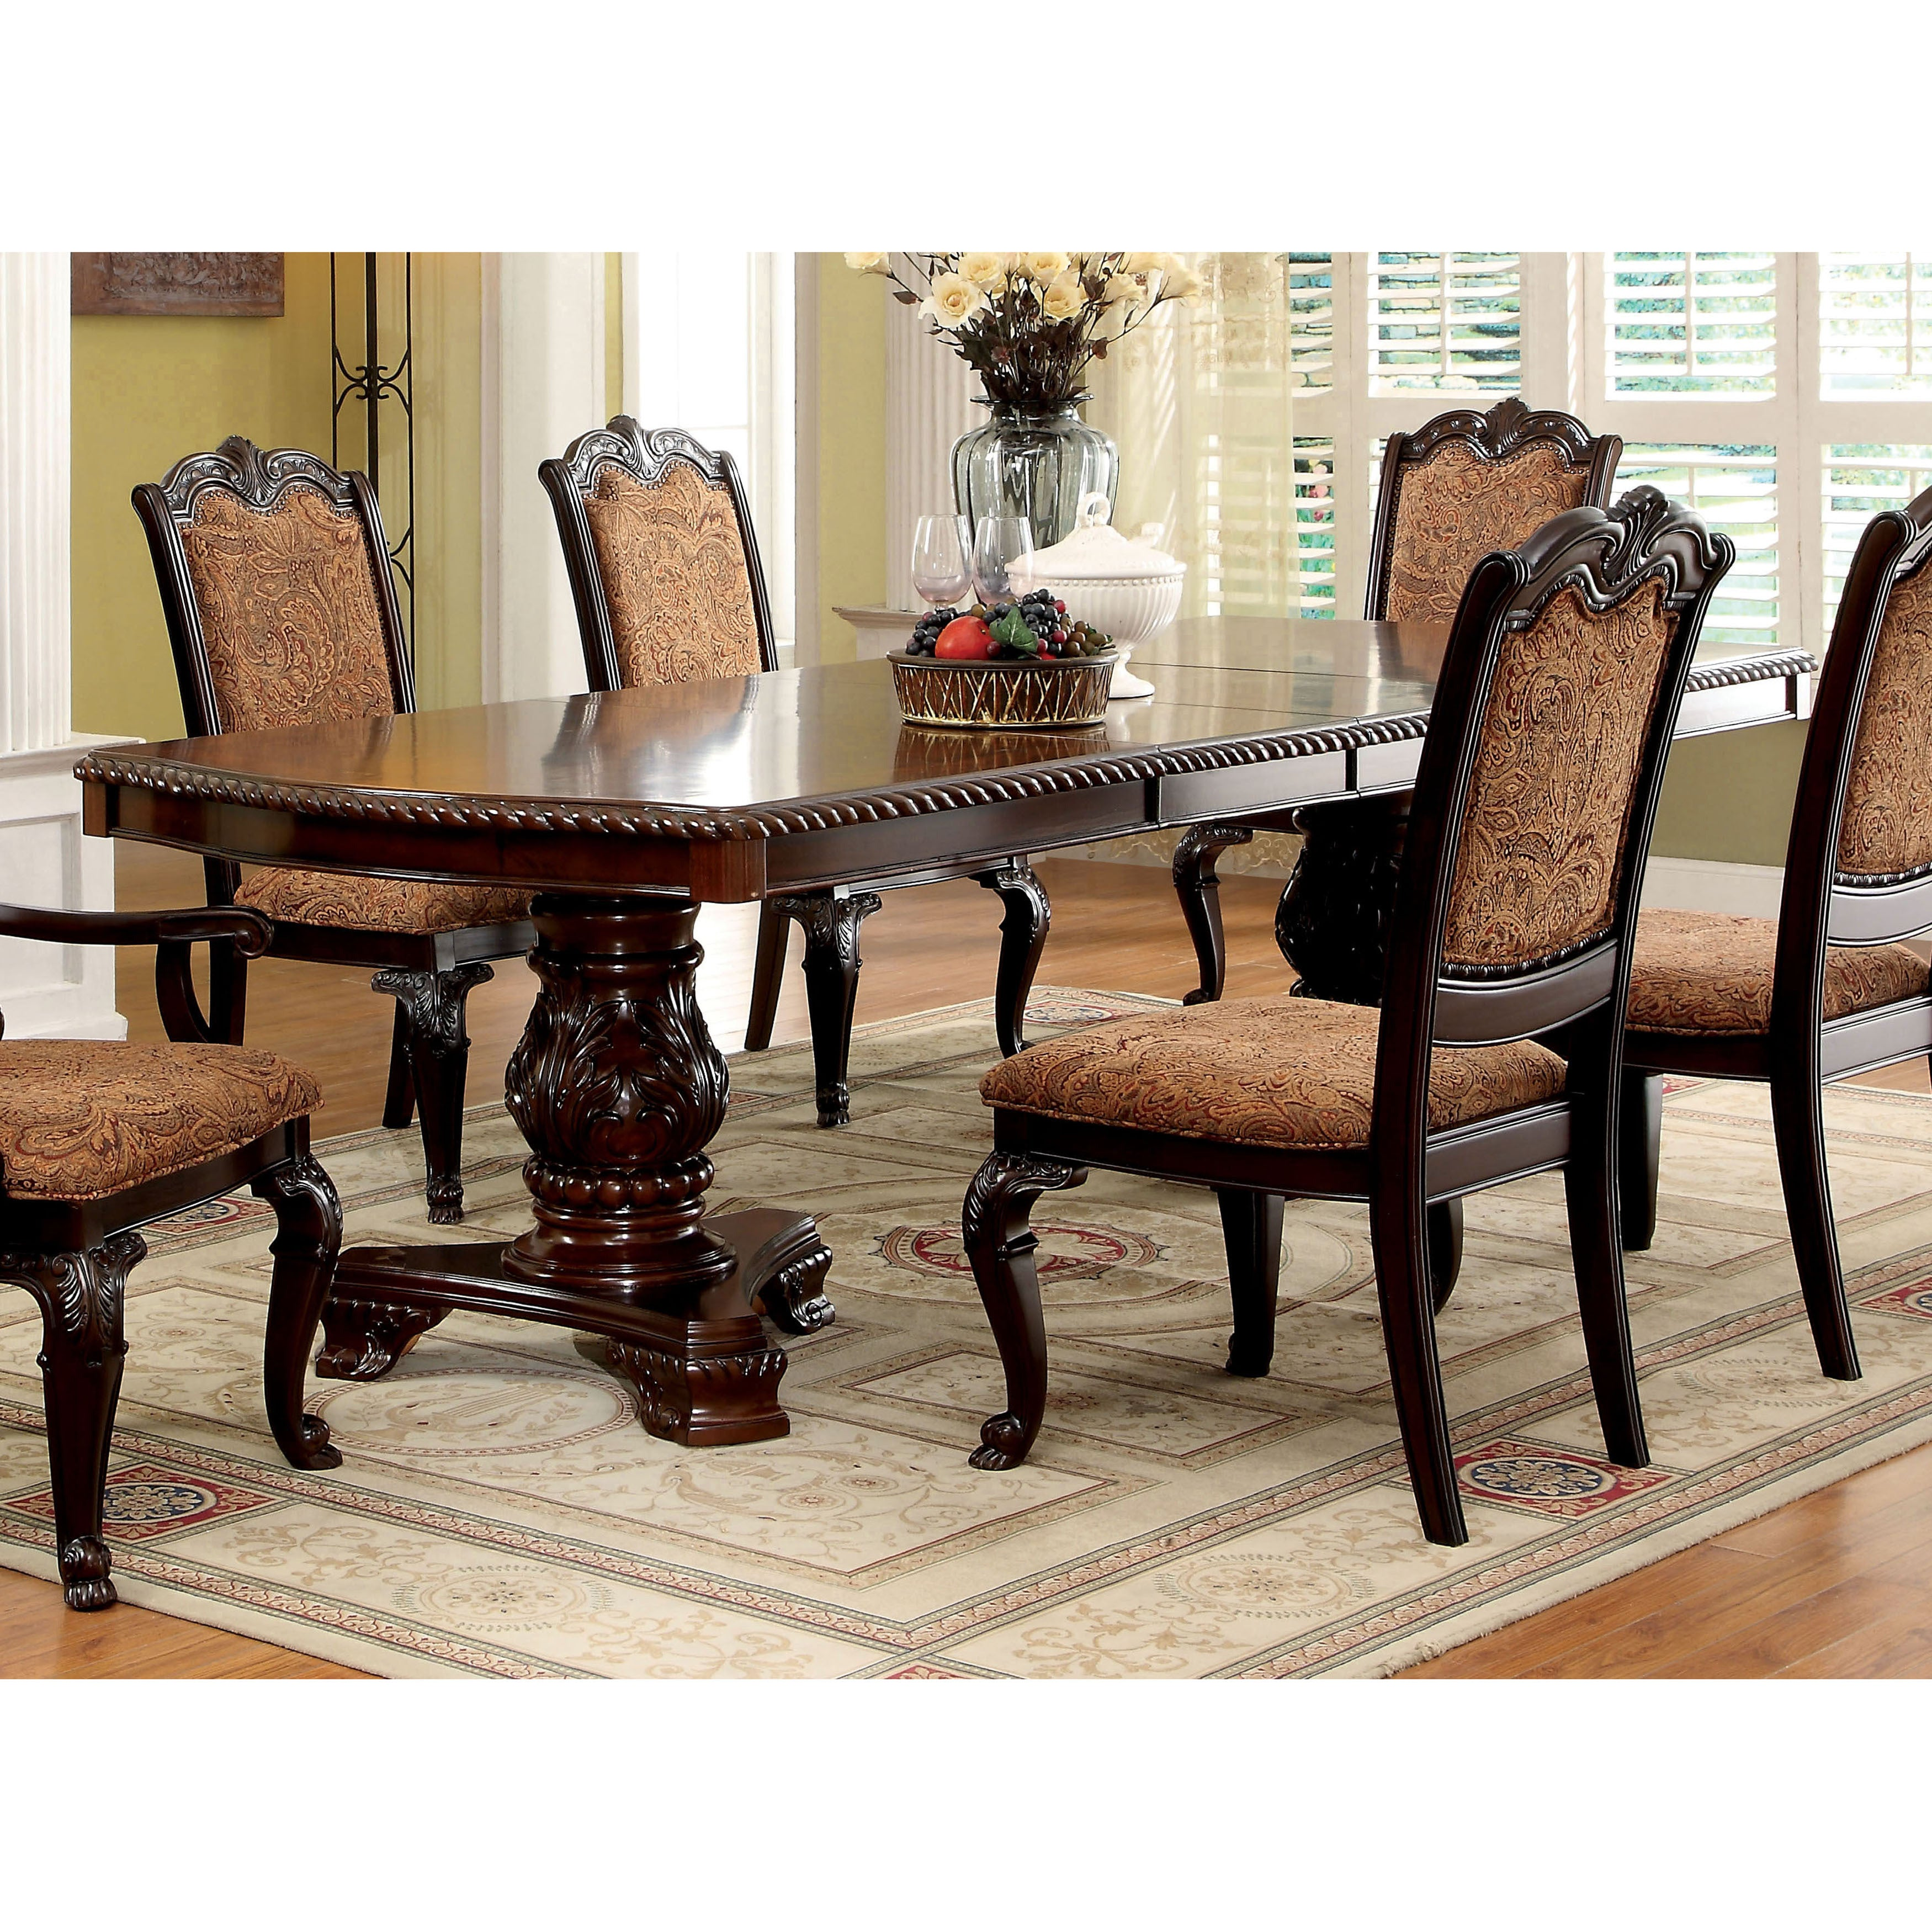 Furniture Of America Oskarre Formal Brown Cherry 108 Inch Dining Table Free Shipping Today 18137868